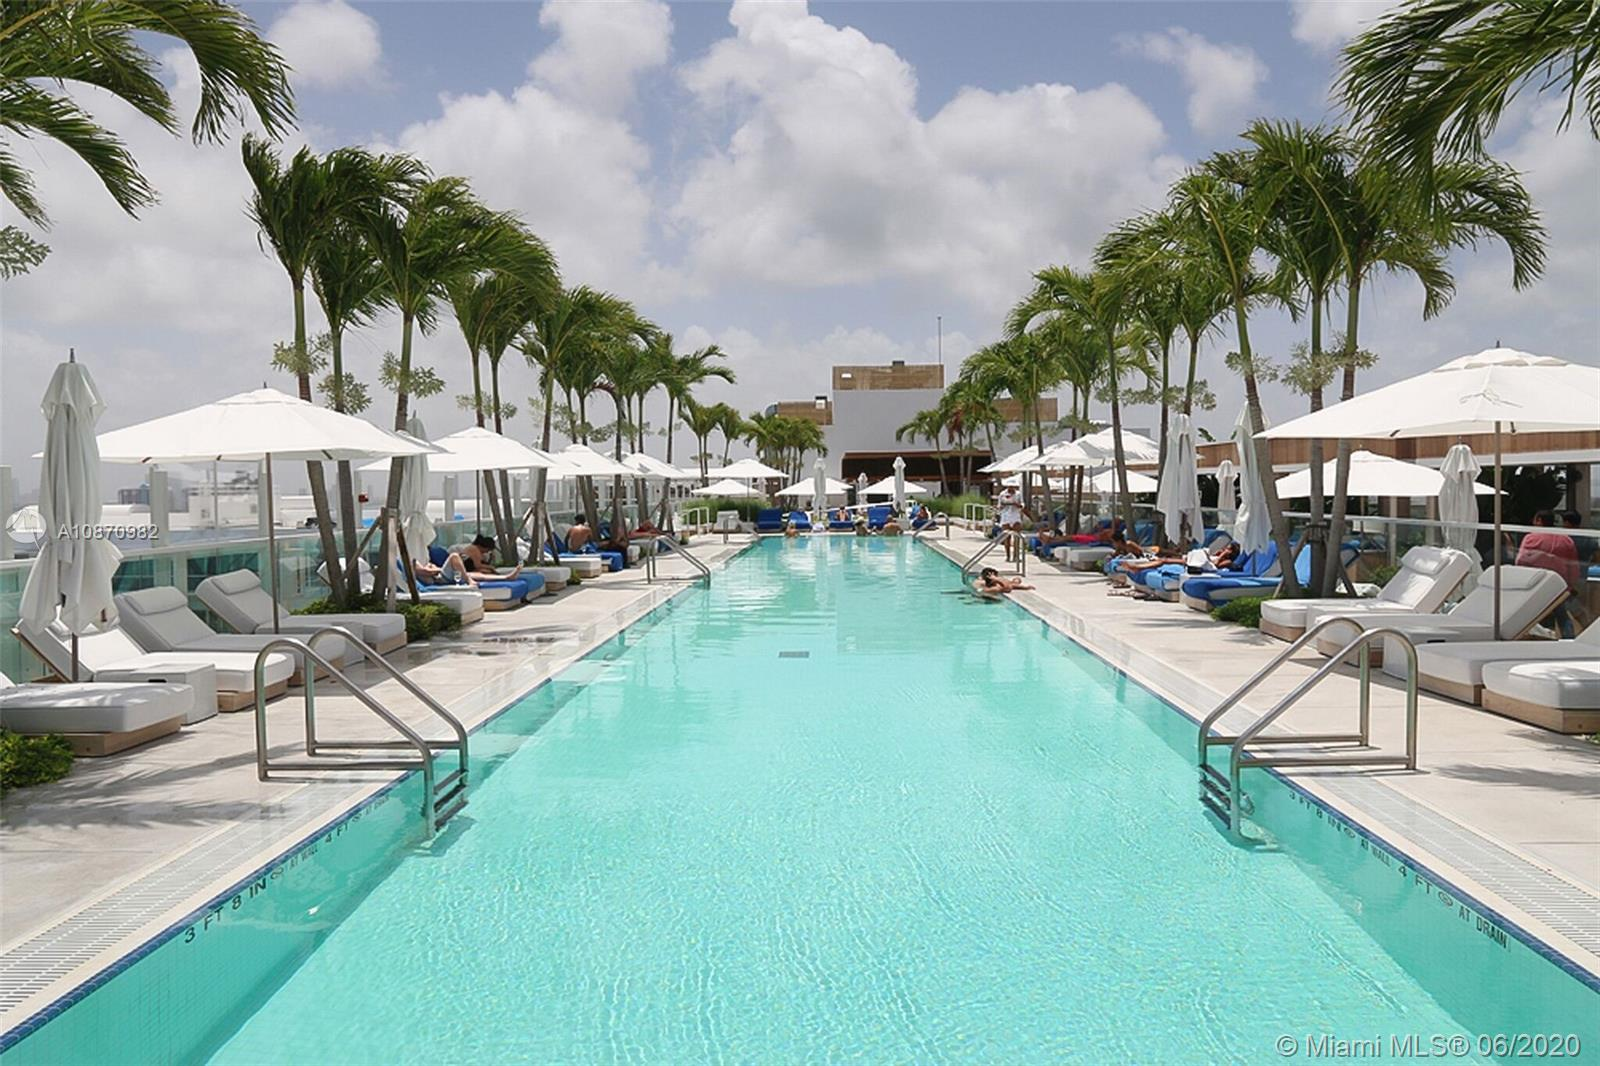 This upscale beachfront hotel is a minute from Collins Avenue bus stop, a mile from the bustling Lincoln Road and 1.4 miles from Miami Beach Architectural District. The property has a high-end restaurant and a rooftop bar, as well as 4 outdoor pools, a fitness center and direct beach access with umbrellas. The sophisticated airy rooms have reclaimed driftwood lining the walls and feature ocean views, plus free WiFi, 55-inch flat-screen TVs and Nespresso machines. Upgraded rooms and full kitchens.